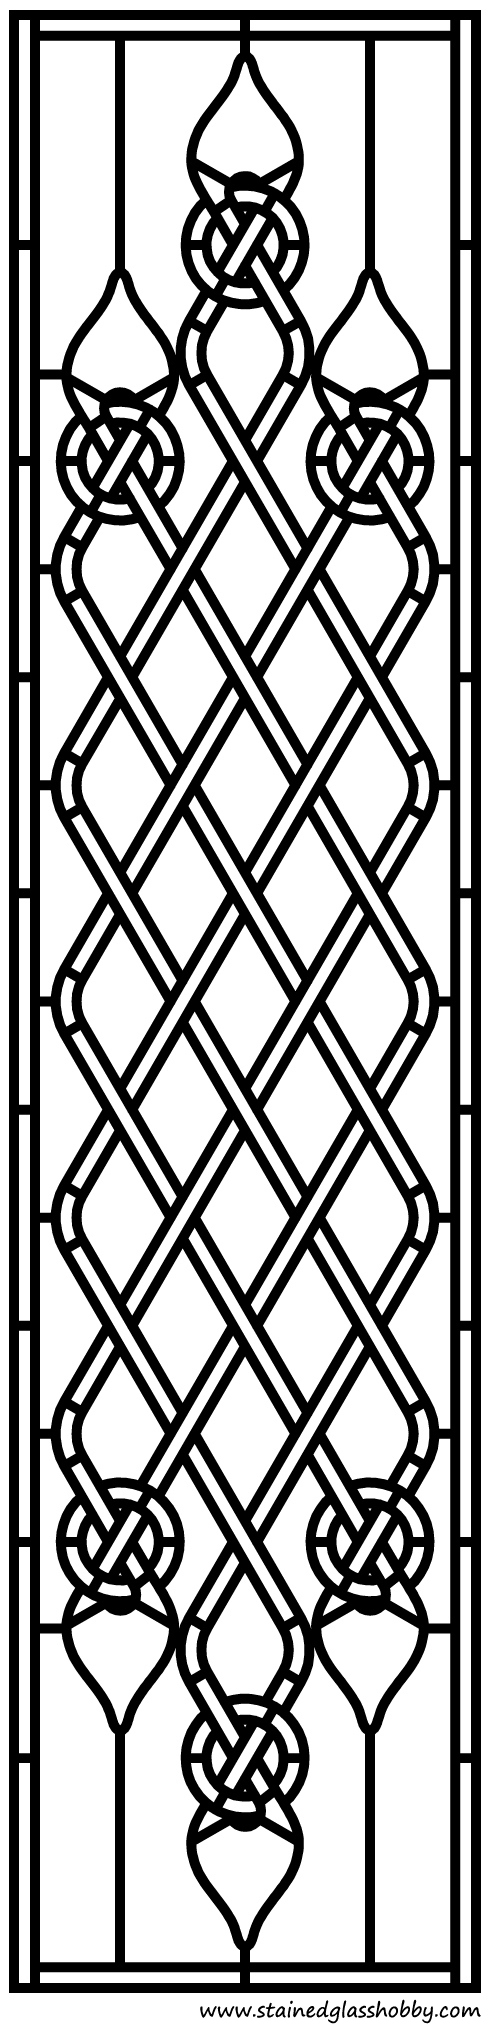 Celtic pattern stained glass design outline